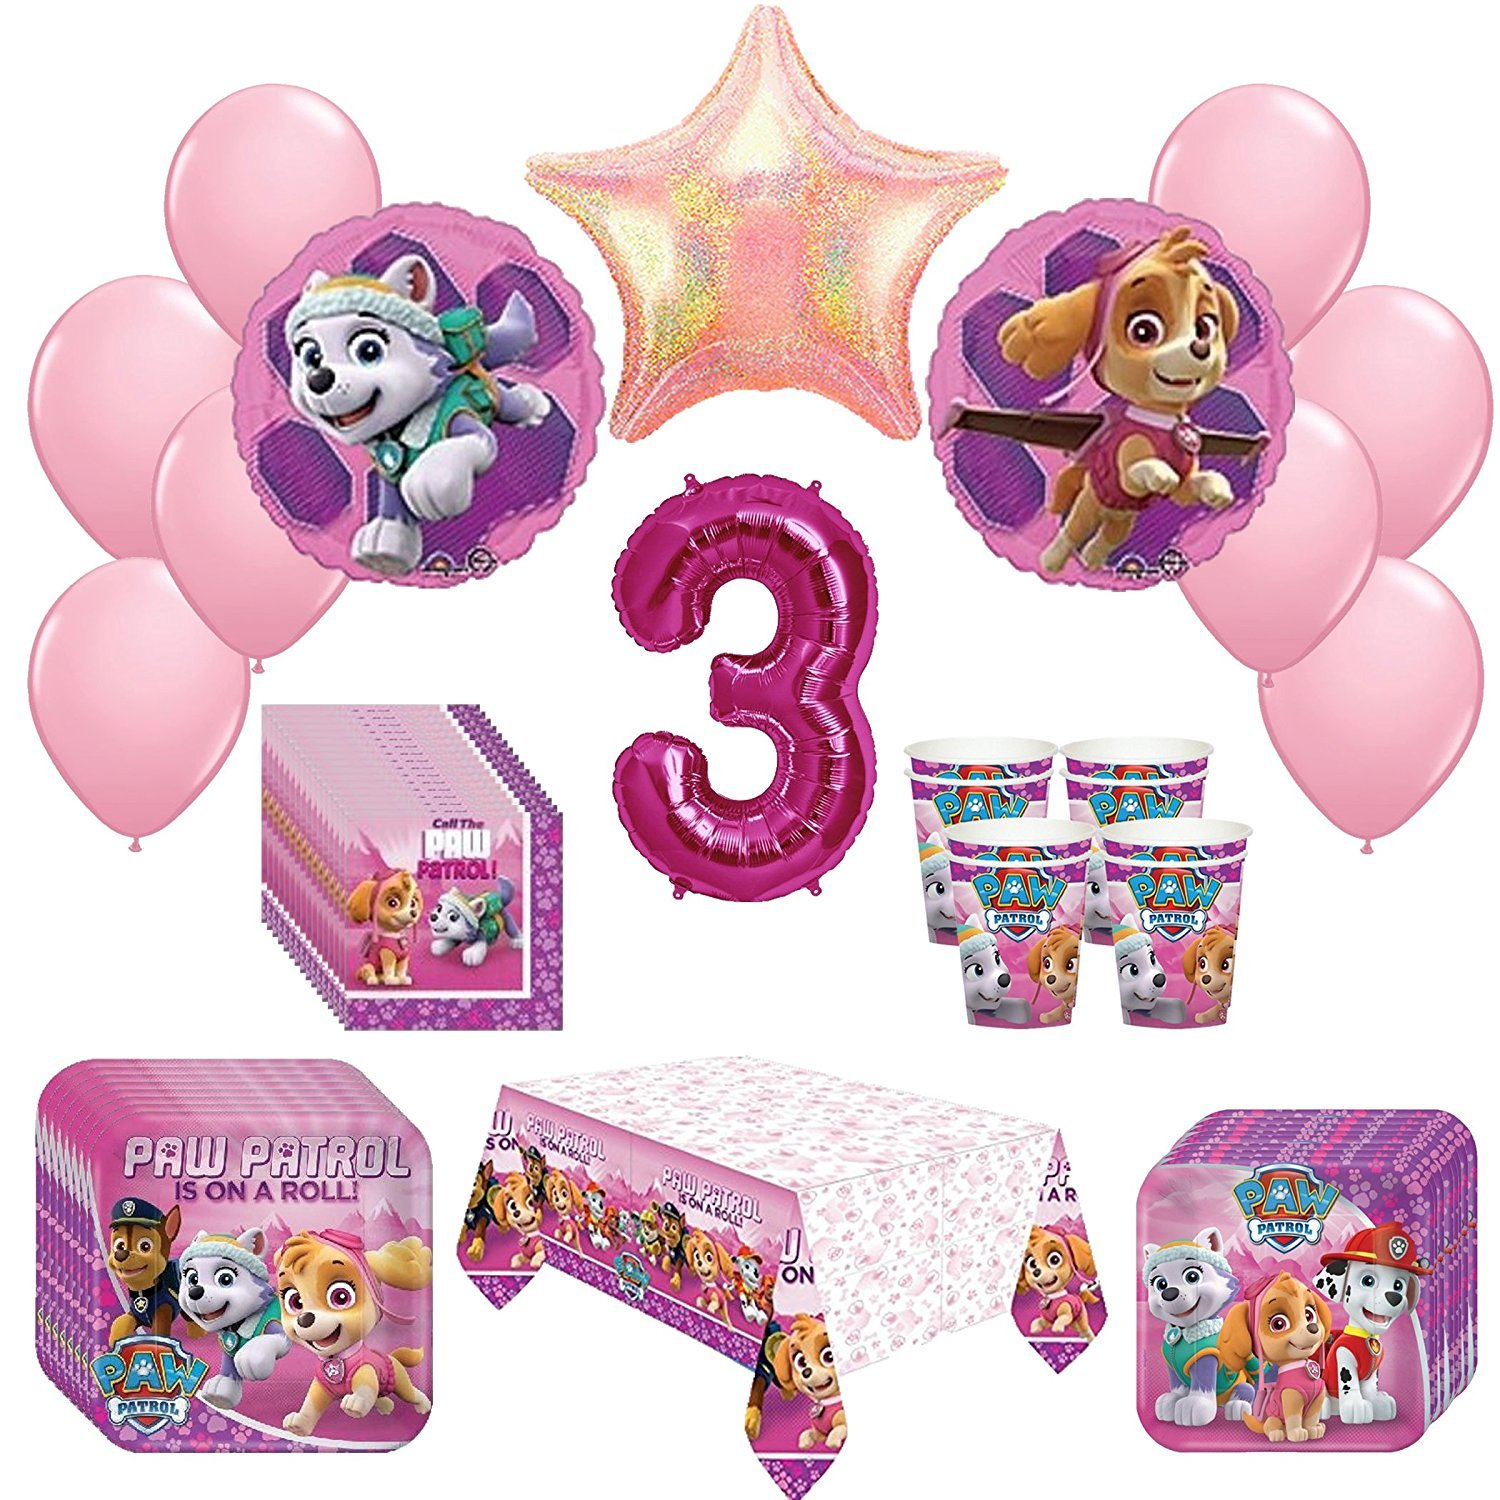 Girl Pups Paw Patrol Skye Everest 3rd Birthday Party Pack 52 Piece  Set by amscan